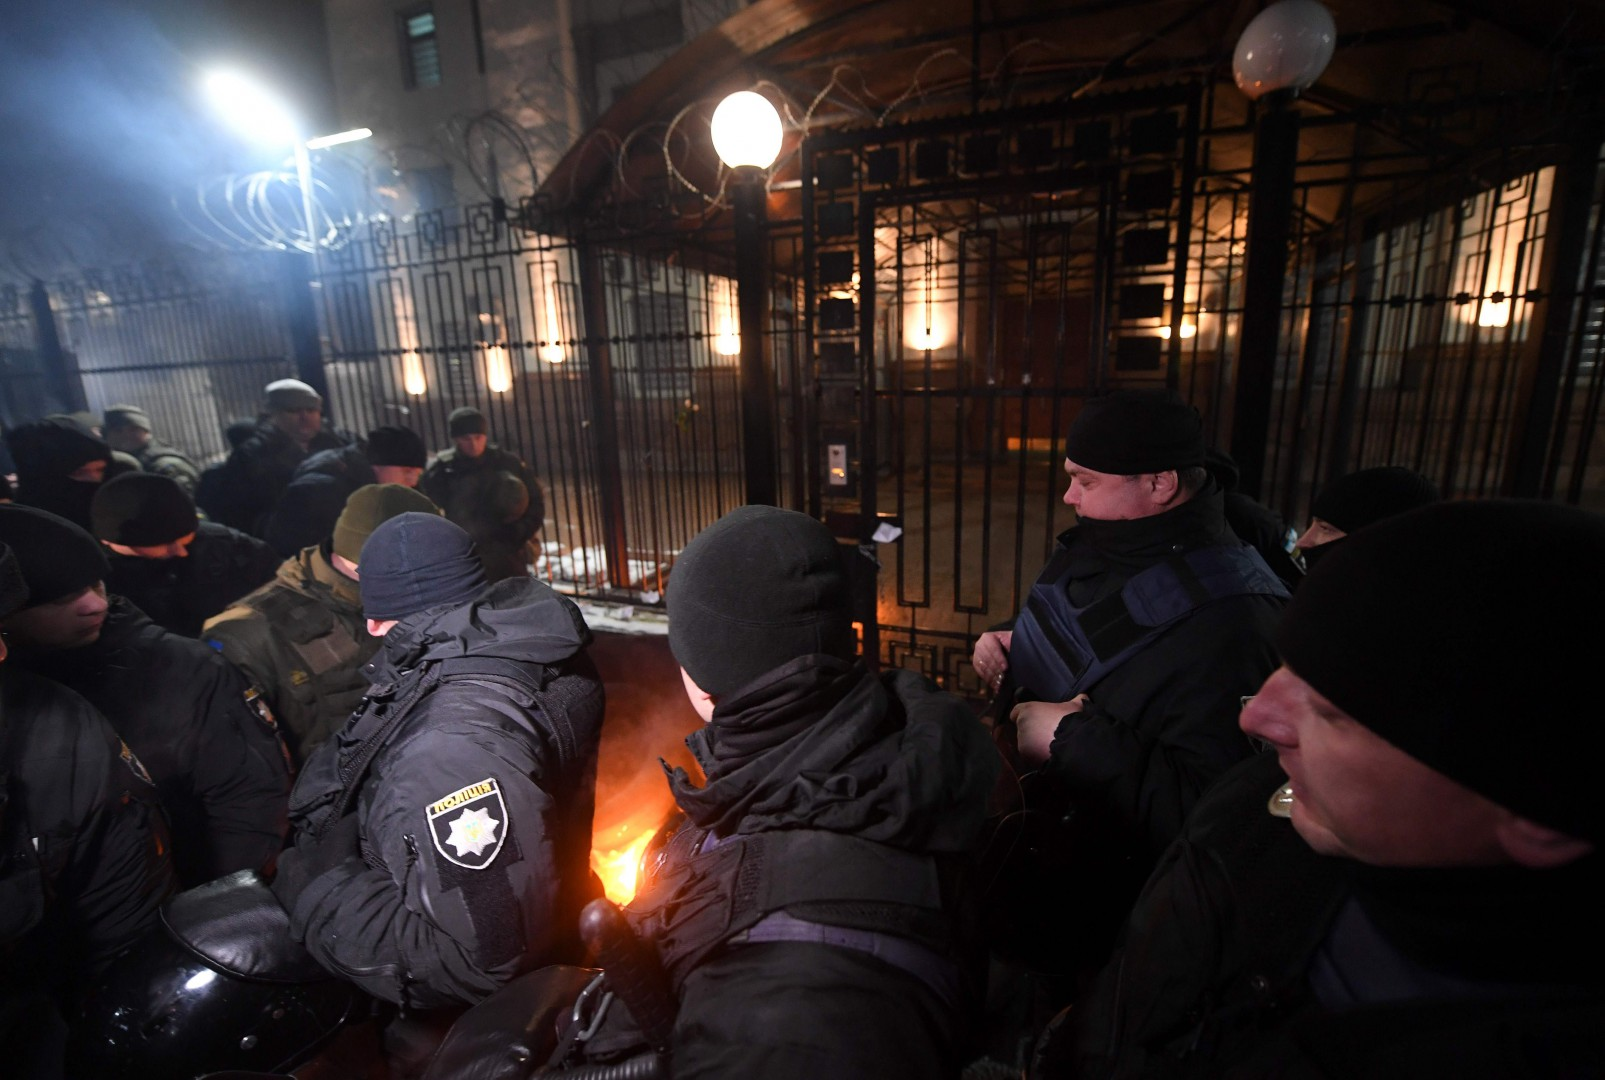 TOPSHOT - Policemen and servicemen of Ukrainian National Guard extinguish a flare thrown by protesters in front of the Russian embassy in Kiev late on November 25, 2018, during a rally following an incident in the Black Sea off Moscow-annexed Crimea, in which three Ukrainian naval vessels were seized by a Russian border guard vessels, as the three ships were on their way through the Kerch Strait heading for the port of Mariupol. - Russia said on November 25 that it has seized three Ukrainian naval ships by force in a strait near Moscow-annexed Crimea, sparking alarm among Kiev's Western allies and raising fears of military escalation. Ukraine's navy had accused Russia of the unprecedented incident including firing on its vessels in the Kerch Strait, a narrow waterway that gives access to the Sea of Azov that is used by Ukraine and Russia. (Photo by Sergei SUPINSKY / AFP)